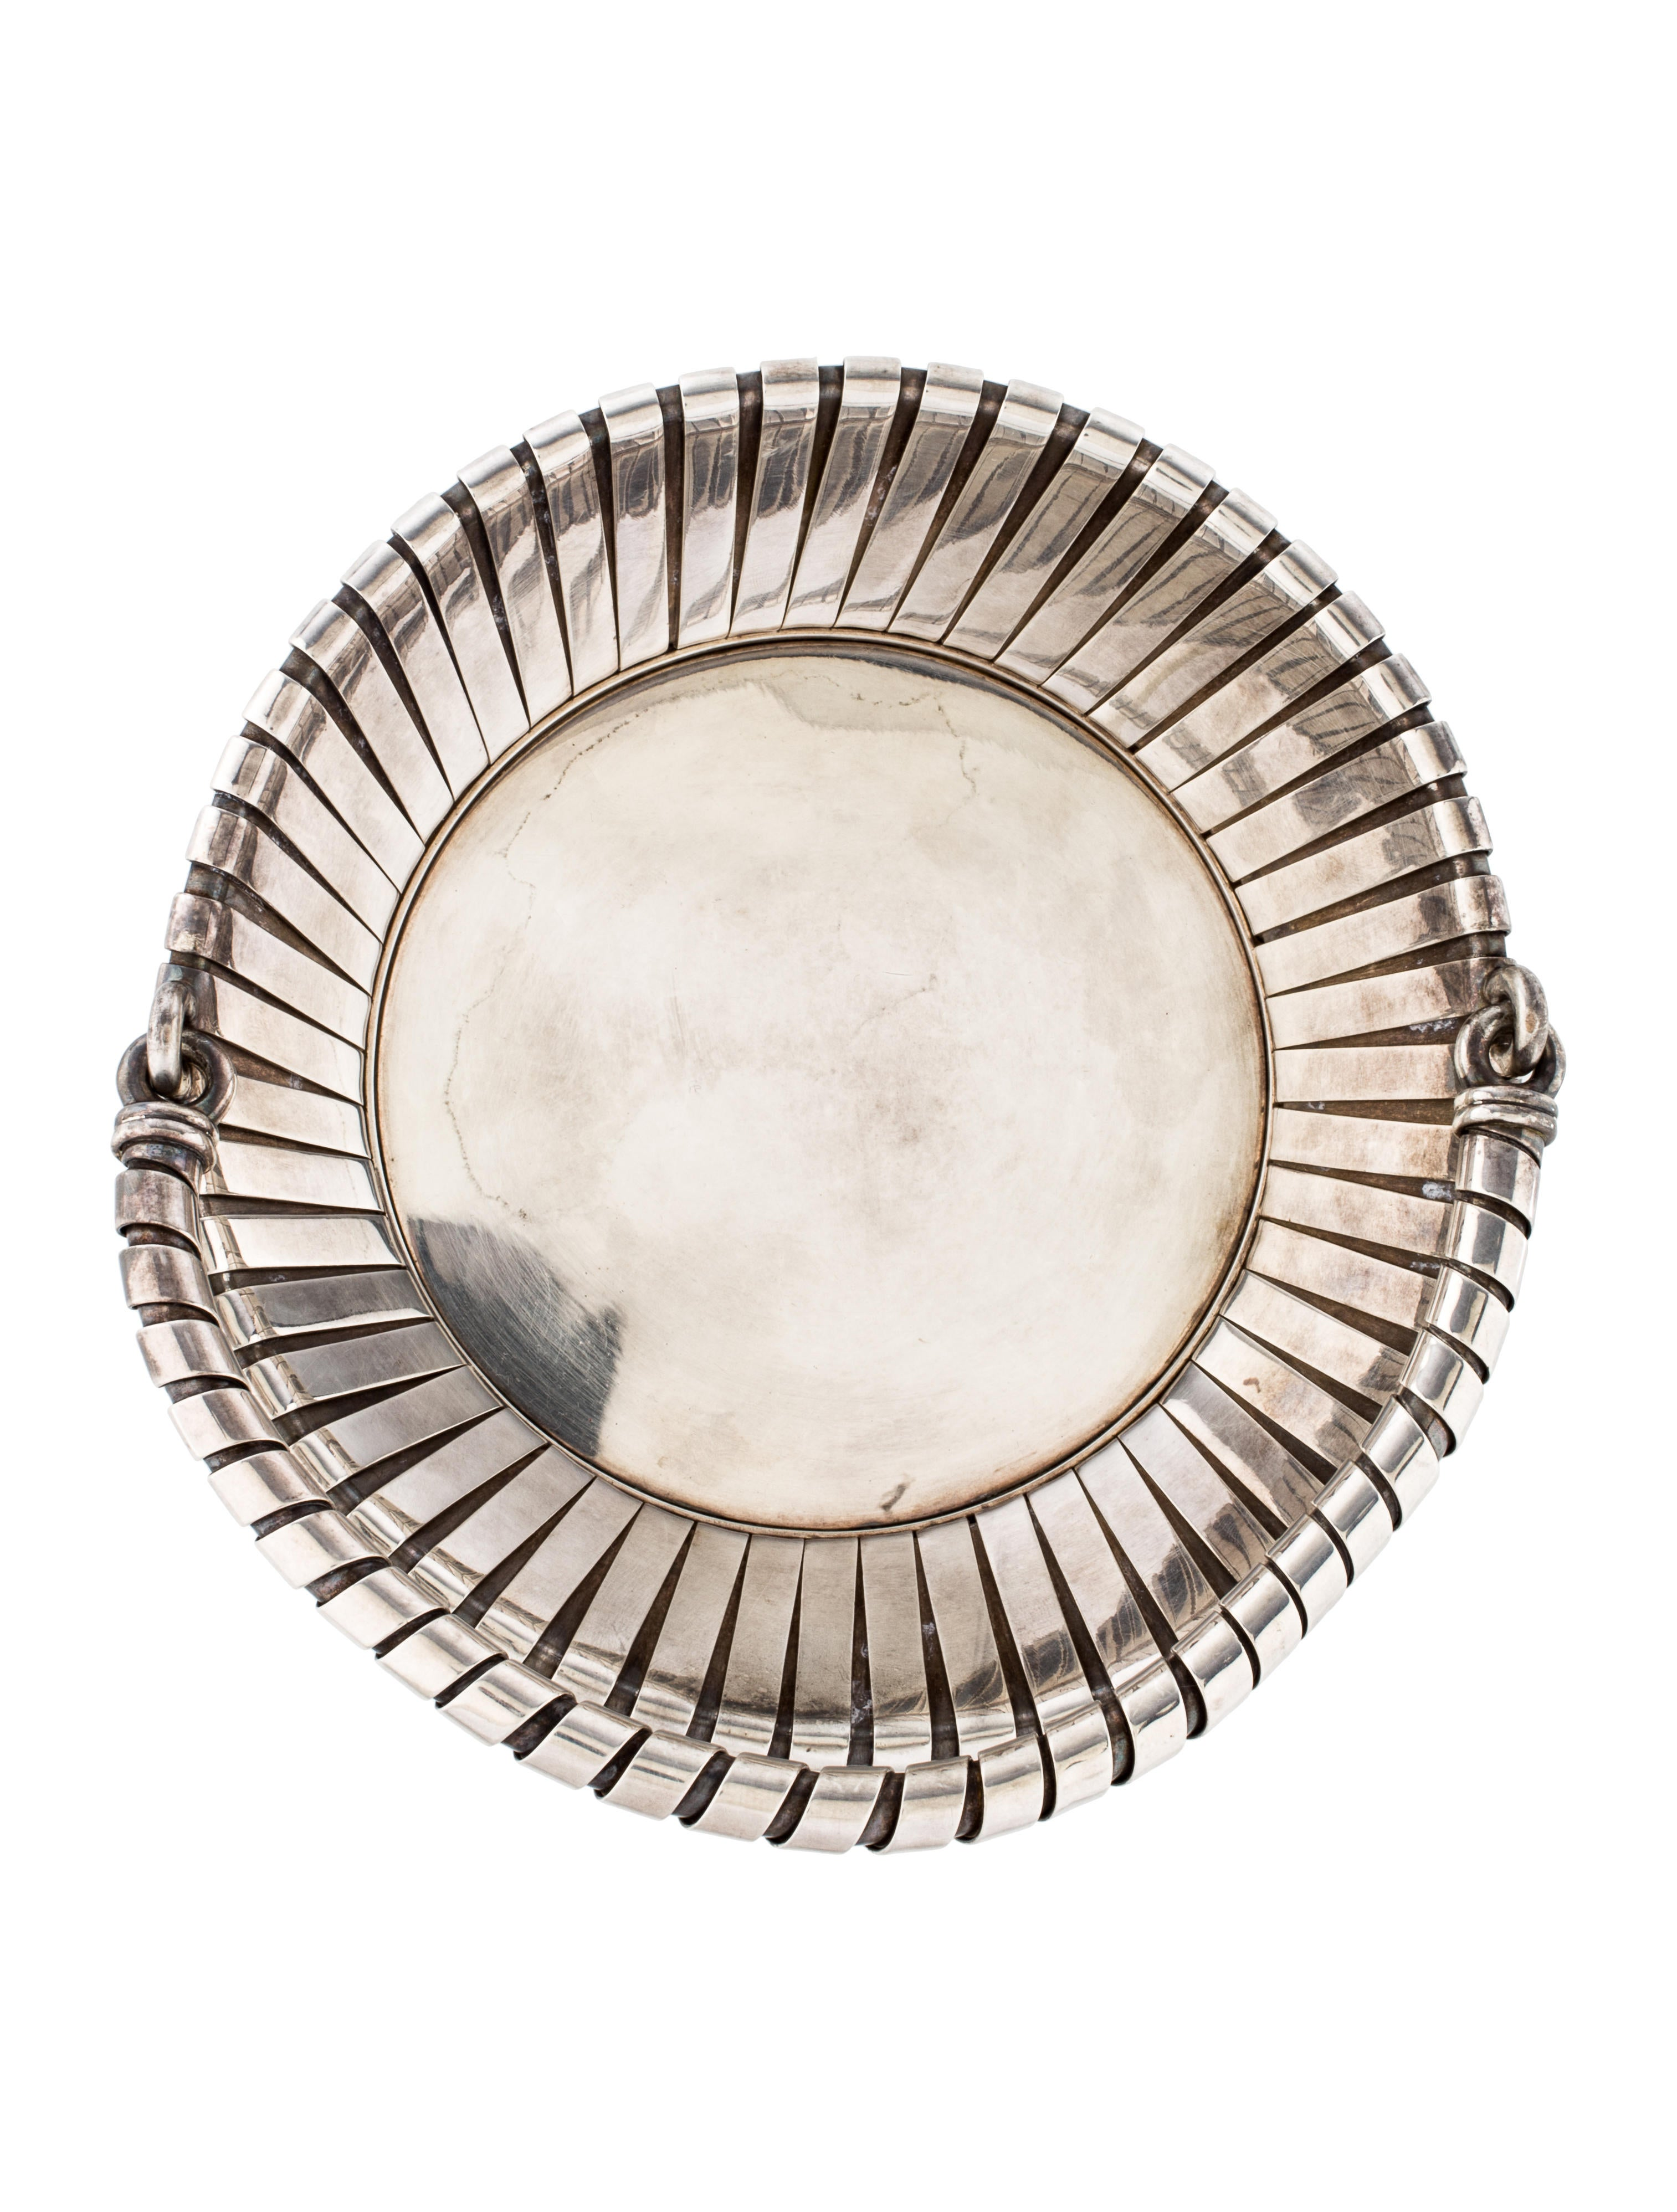 Bvlgari sterling silver basket decor and accessories for Artistic accents genuine silver decoration